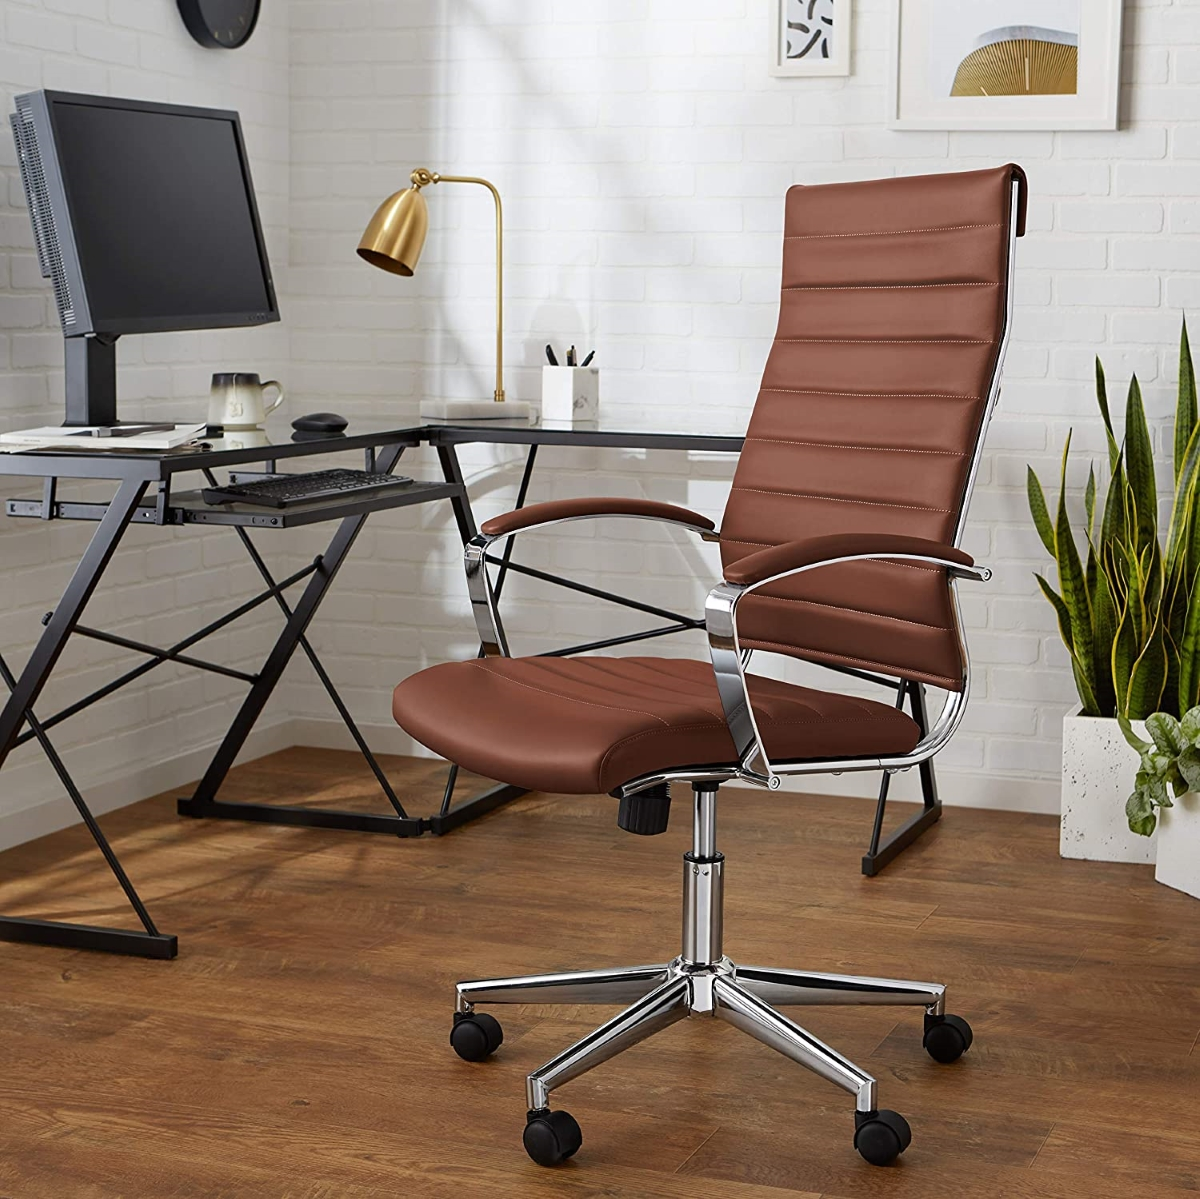 Modern-Brown-Leather-Office-Chair